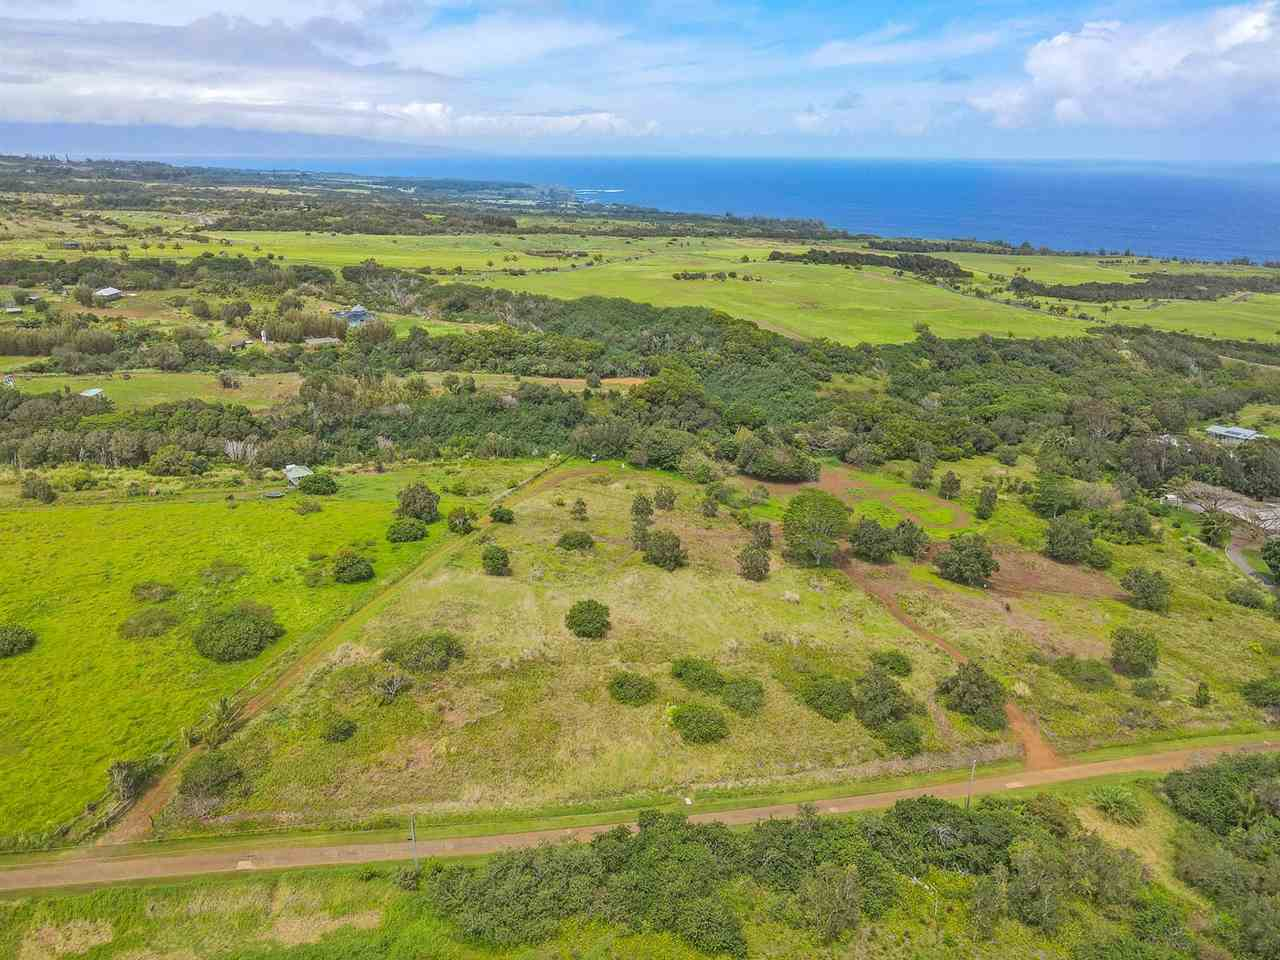 Manawai Pl Lot 3 Haiku, Hi 96708 vacant land - photo 11 of 19